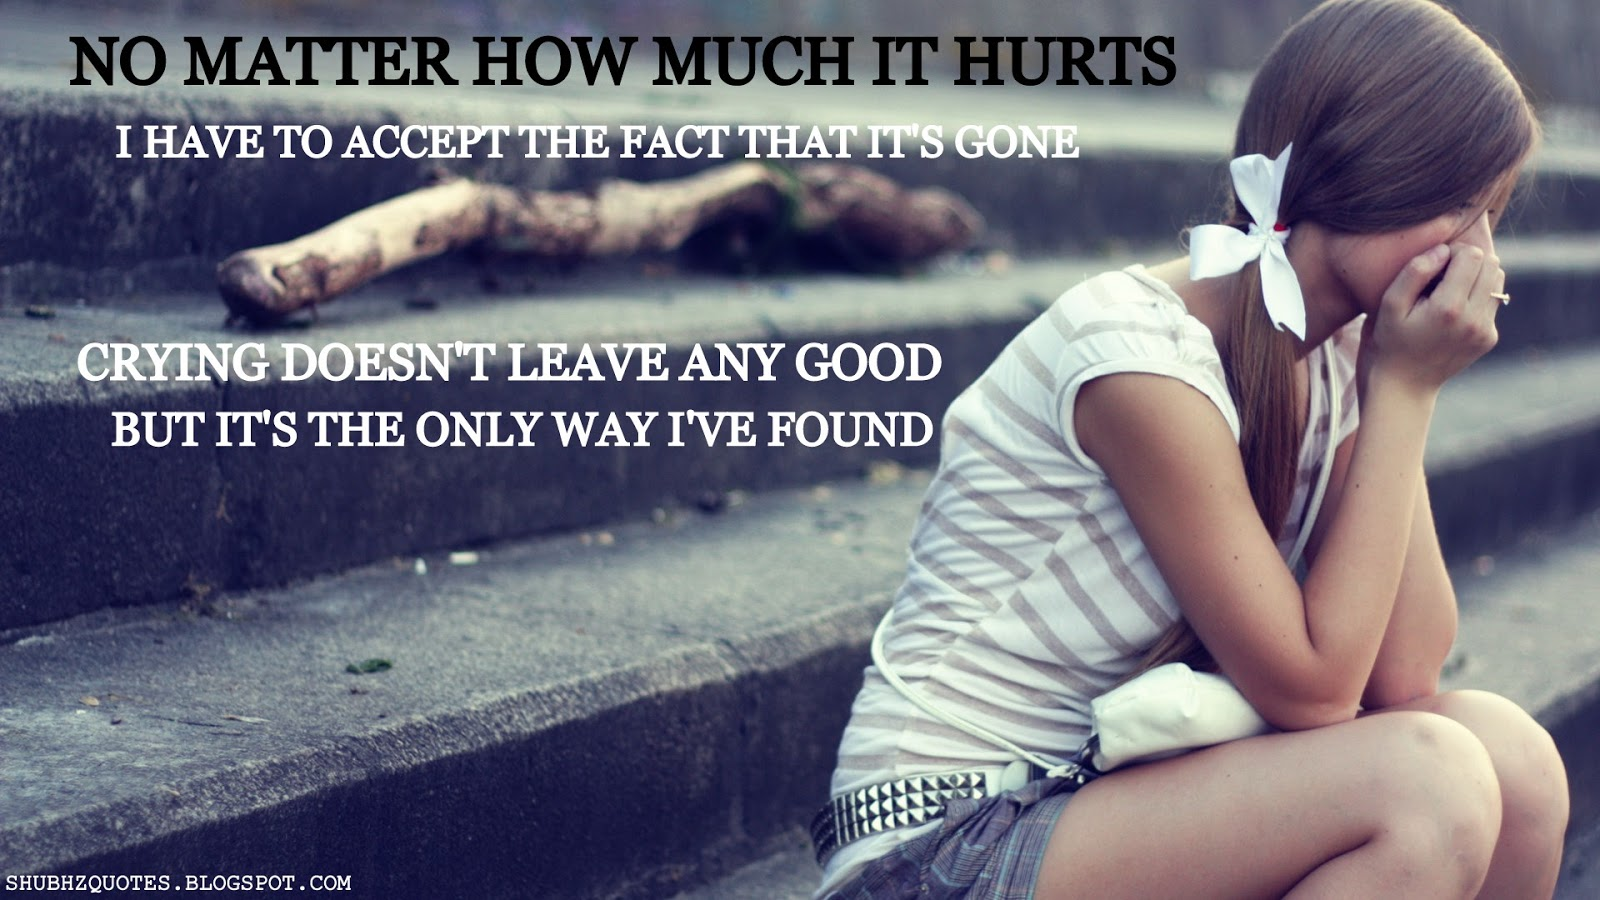 Alone Sad Girl Quotes Image, Hq Backgrounds - Quotes On A Lonely Girl - HD Wallpaper